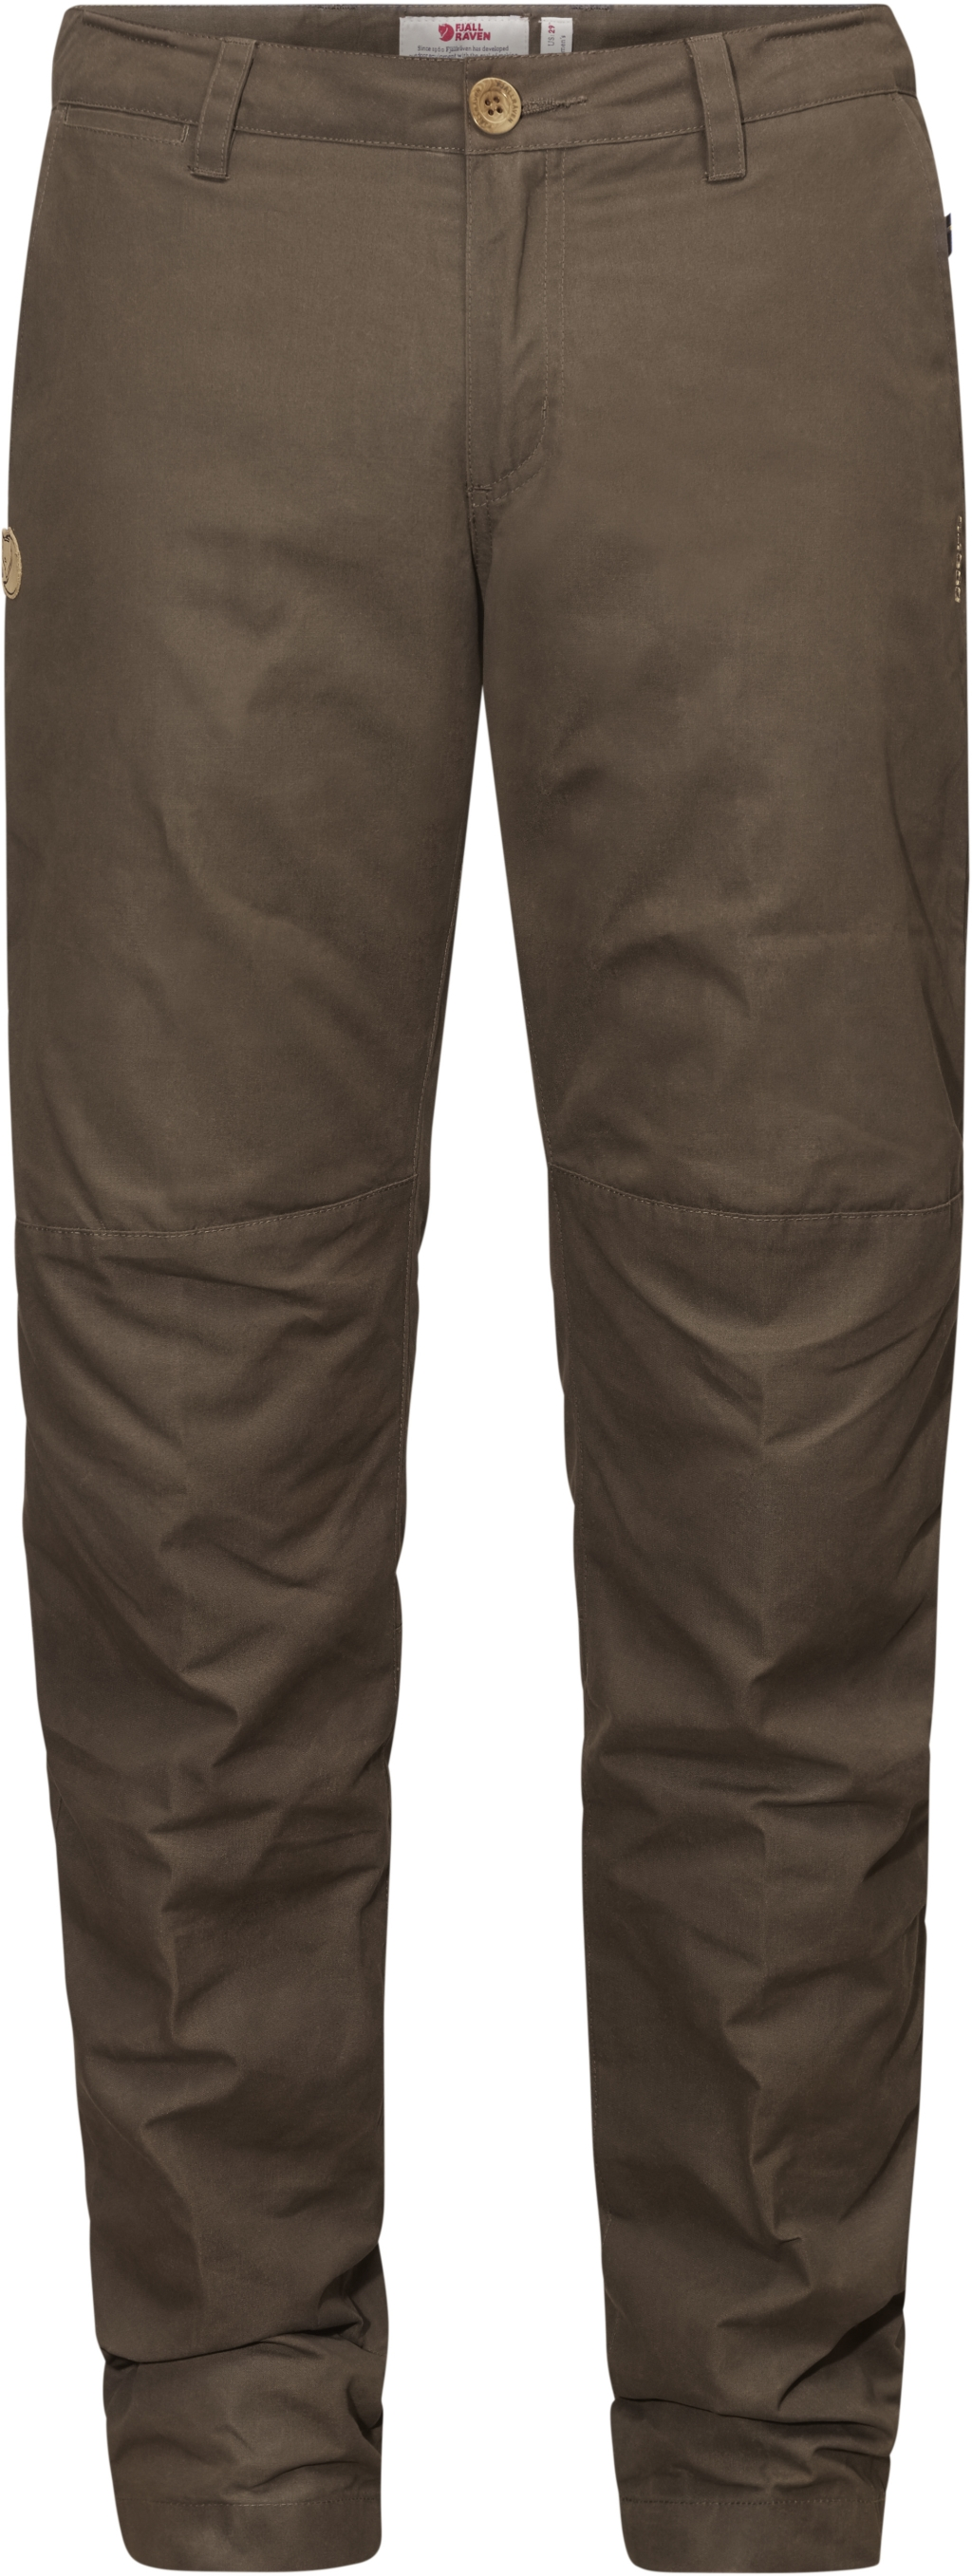 FjallRaven Sormland Tapered Winter Trousers W Dark Olive-30